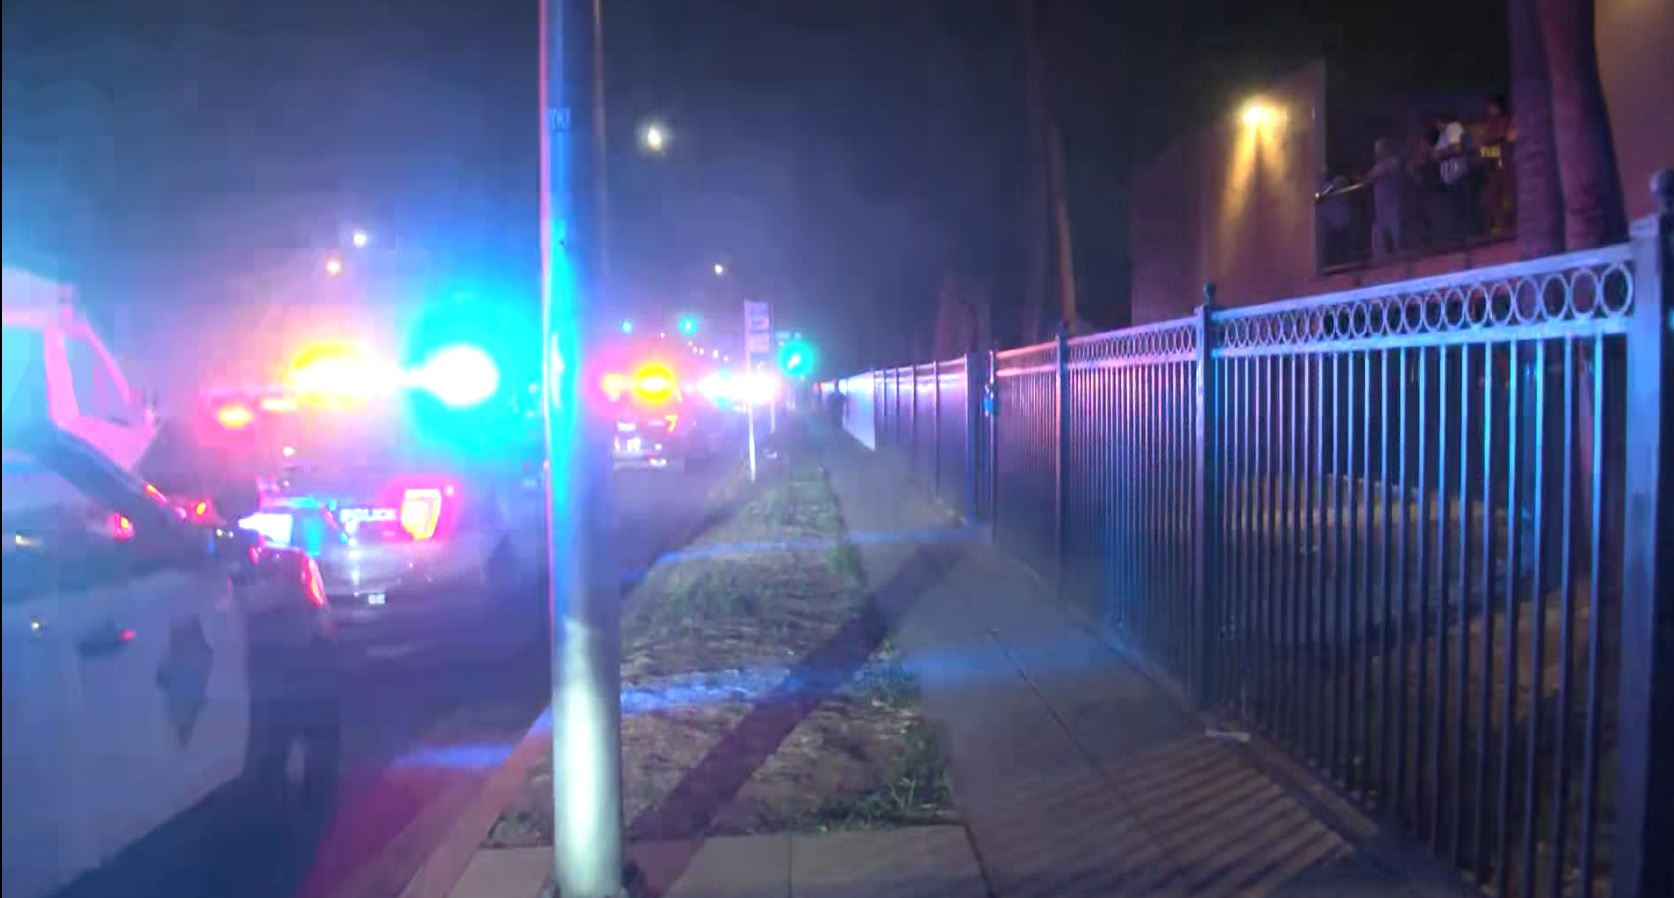 Two men shot from behind in southeast Fresno, both injured, police say